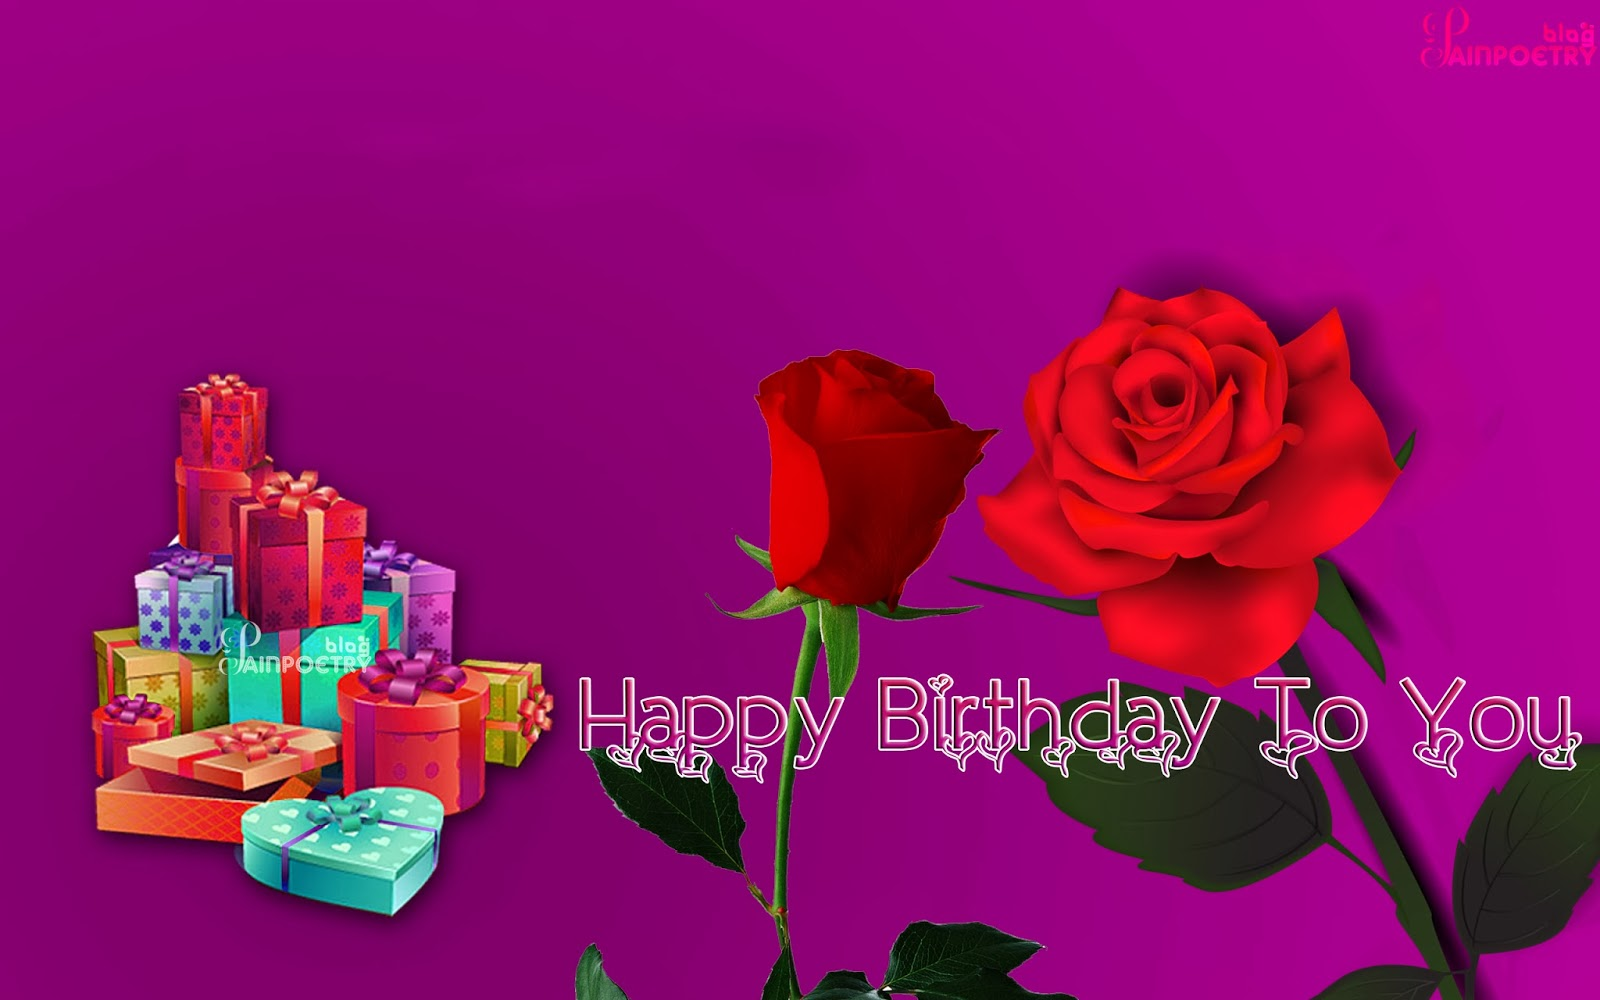 Happy-Birthday-Special-Gifts-Image-Photo-Wallpaper-HD-Wide